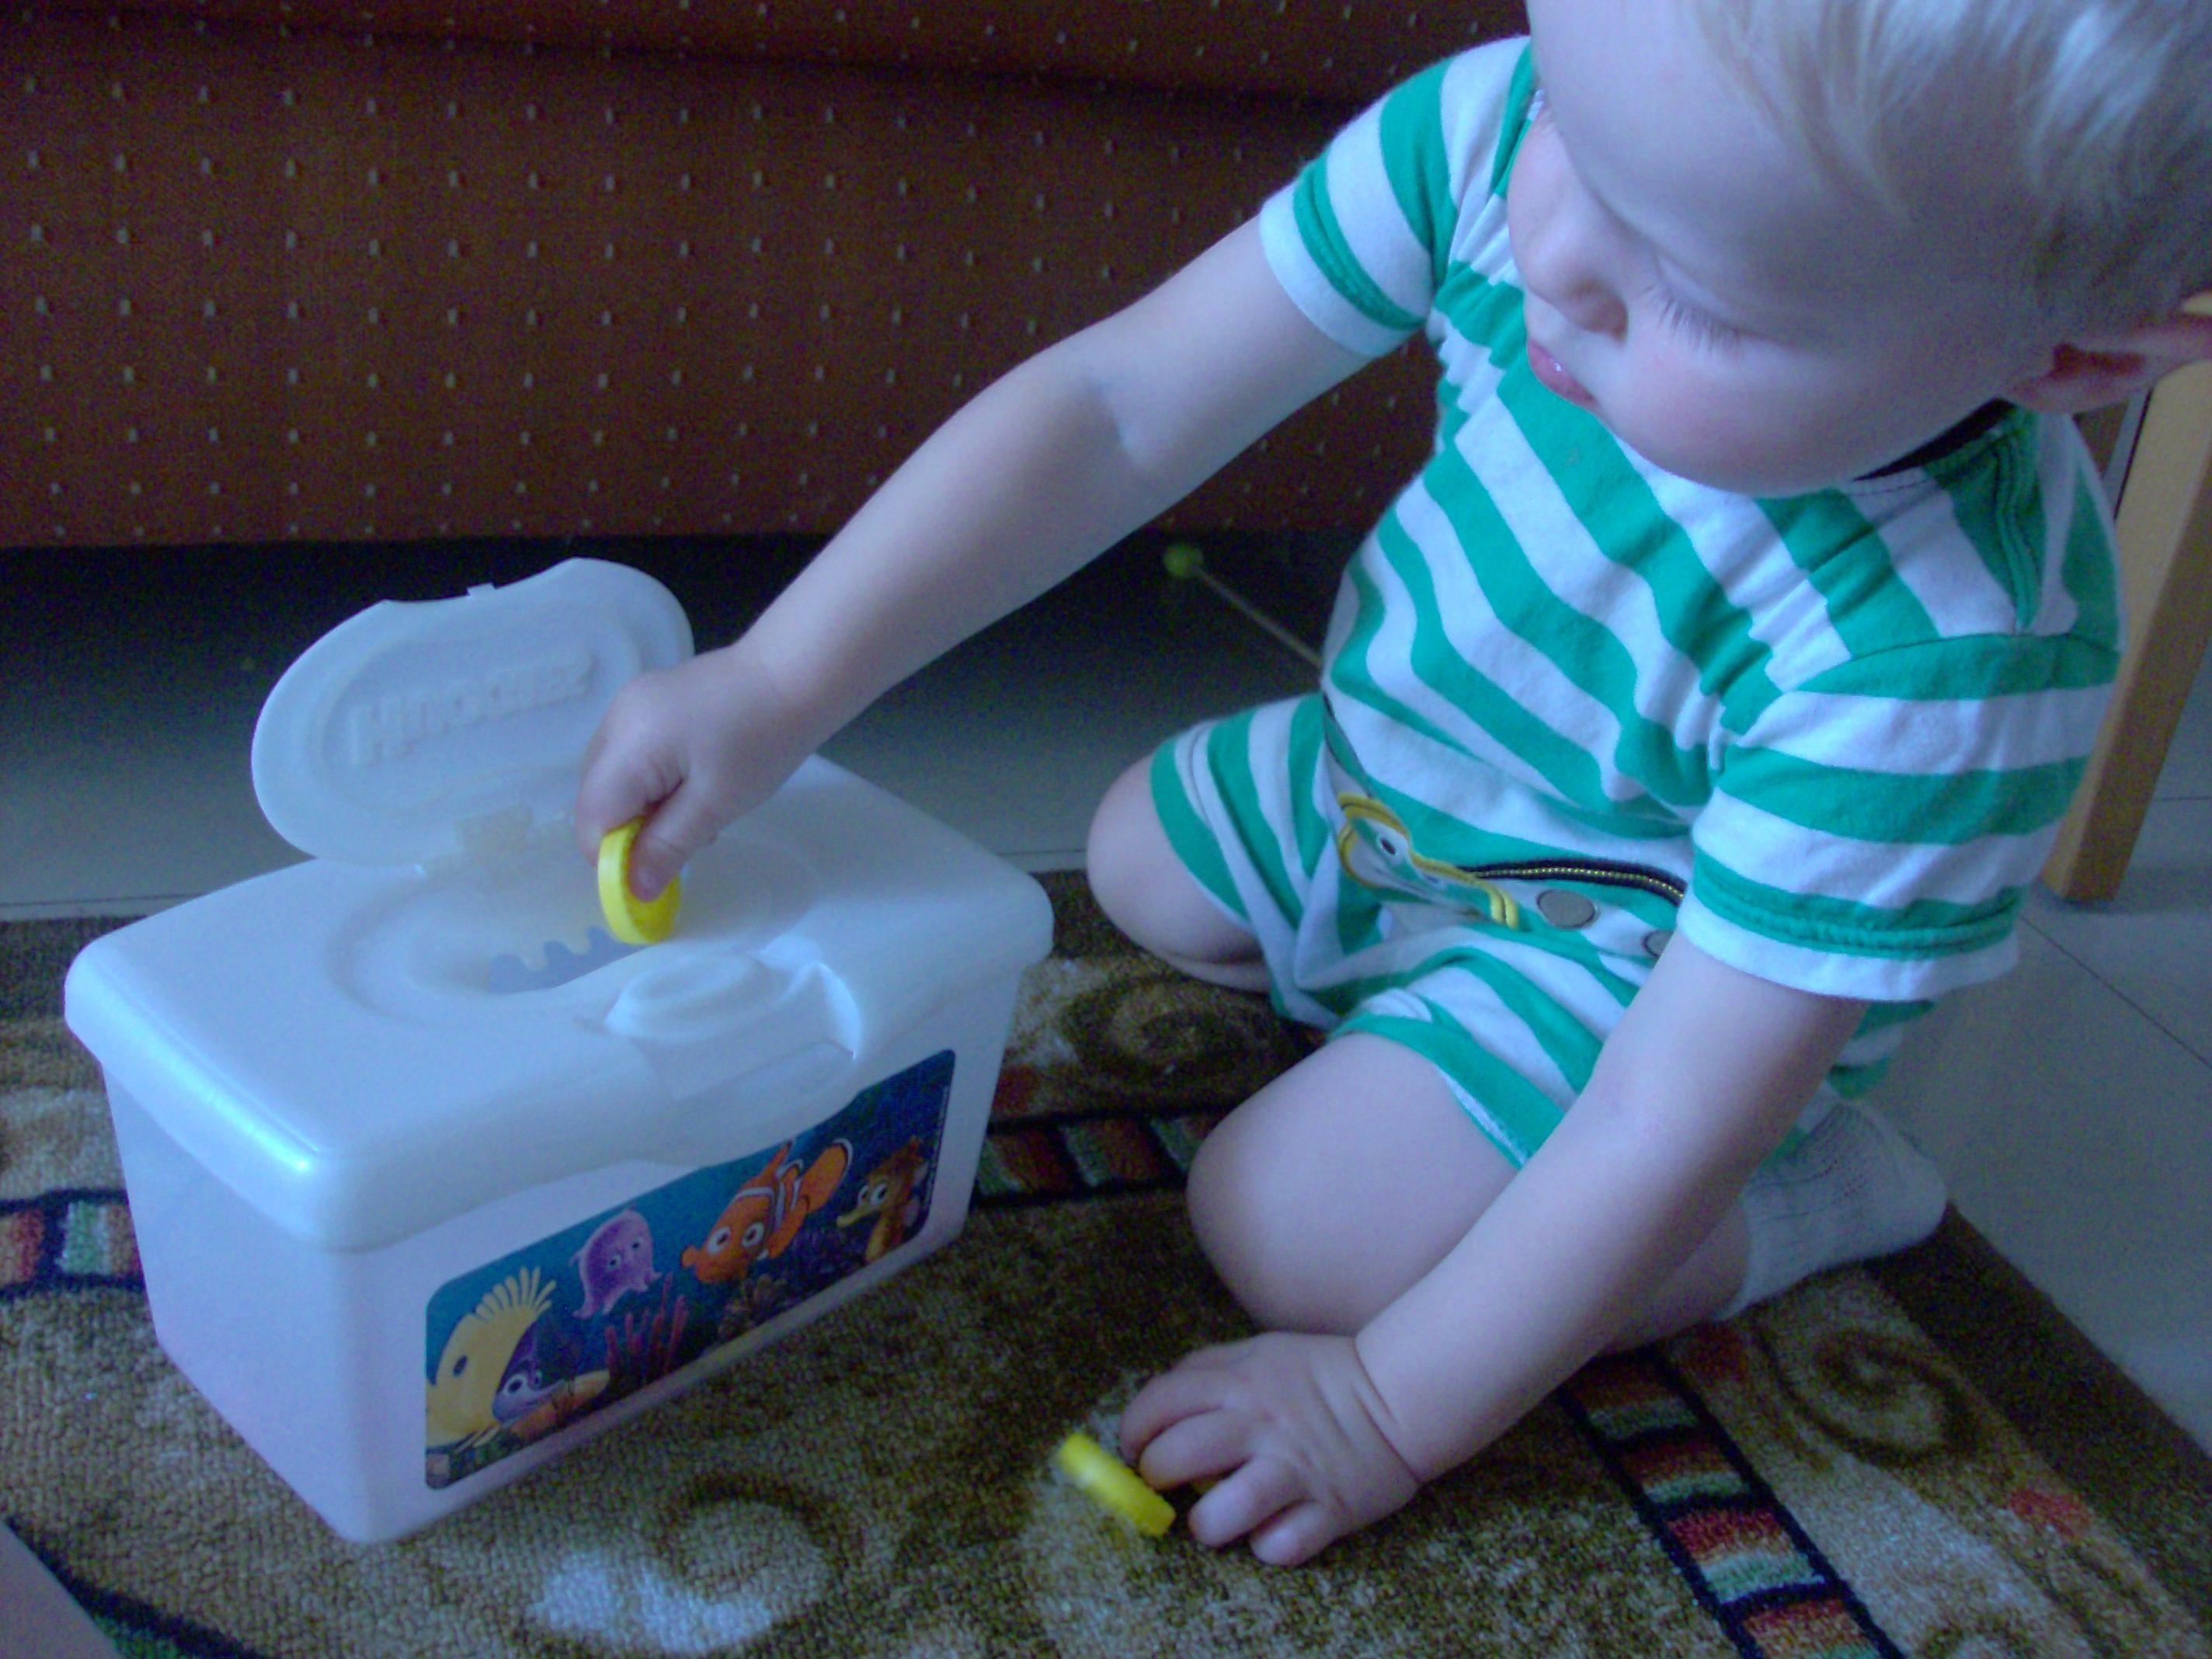 Connect 4 Games for Toddlers